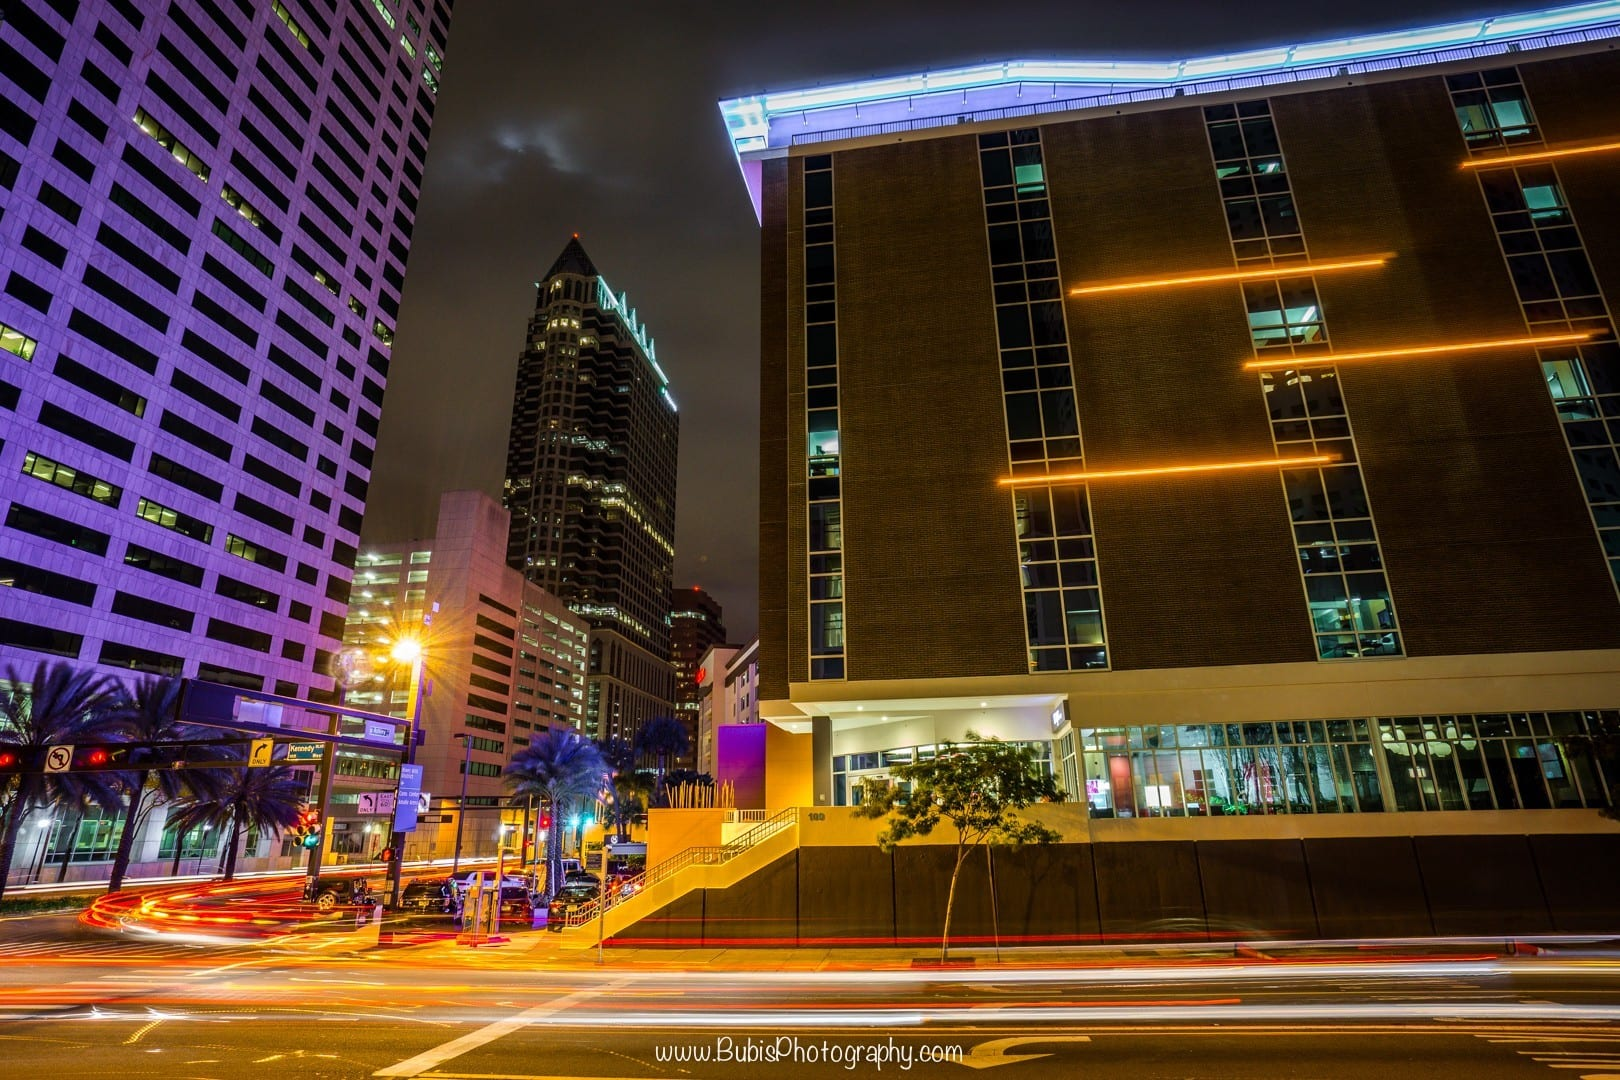 Downtown Tampa by Dmitry Bubis